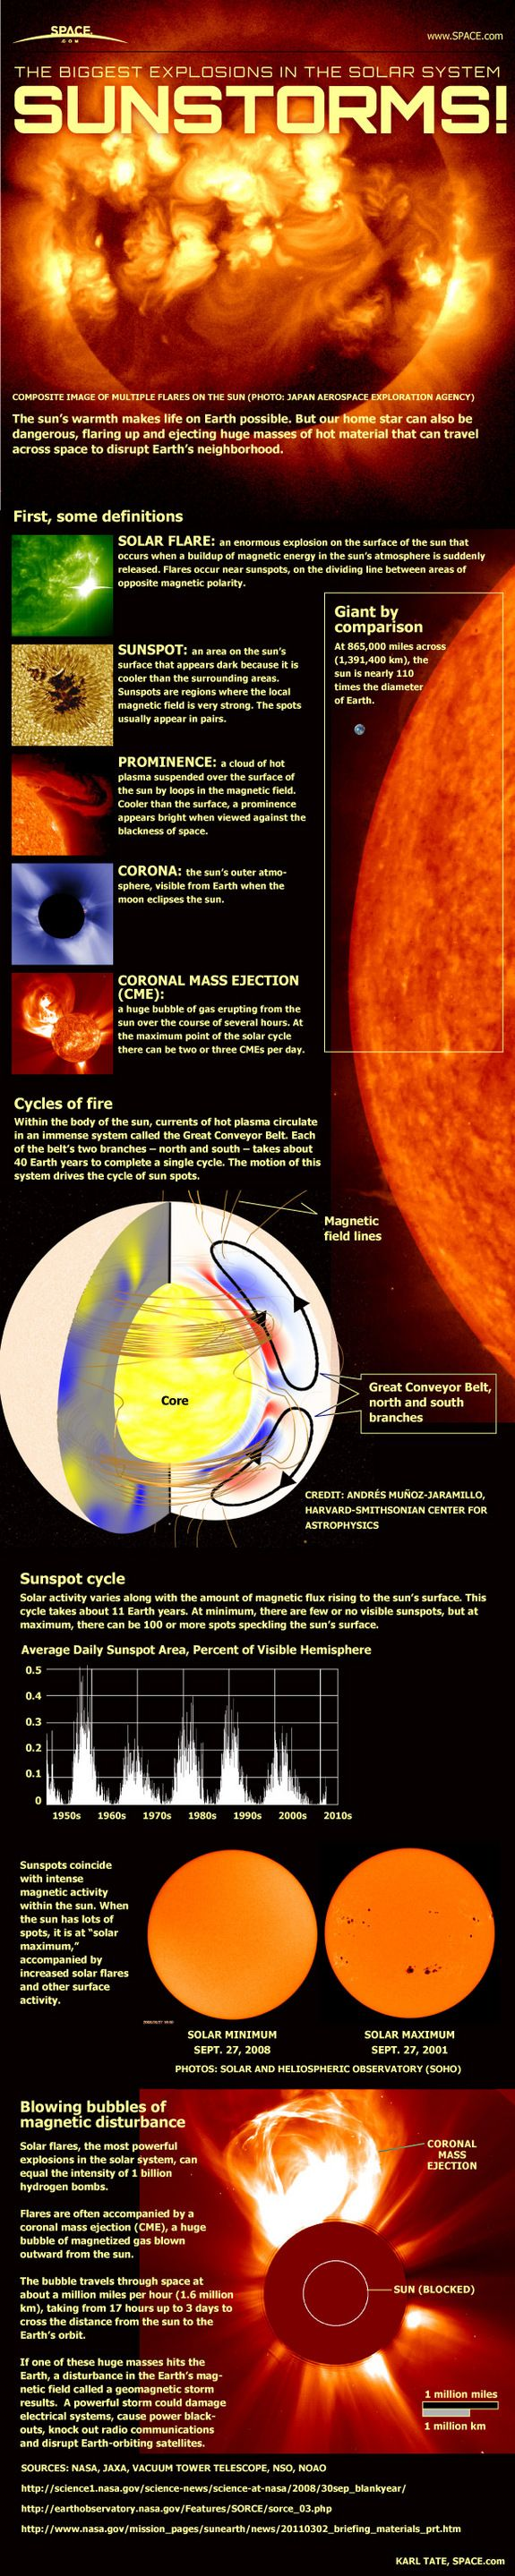 How solar flares, sun storms and huge eruptions from the sun work.